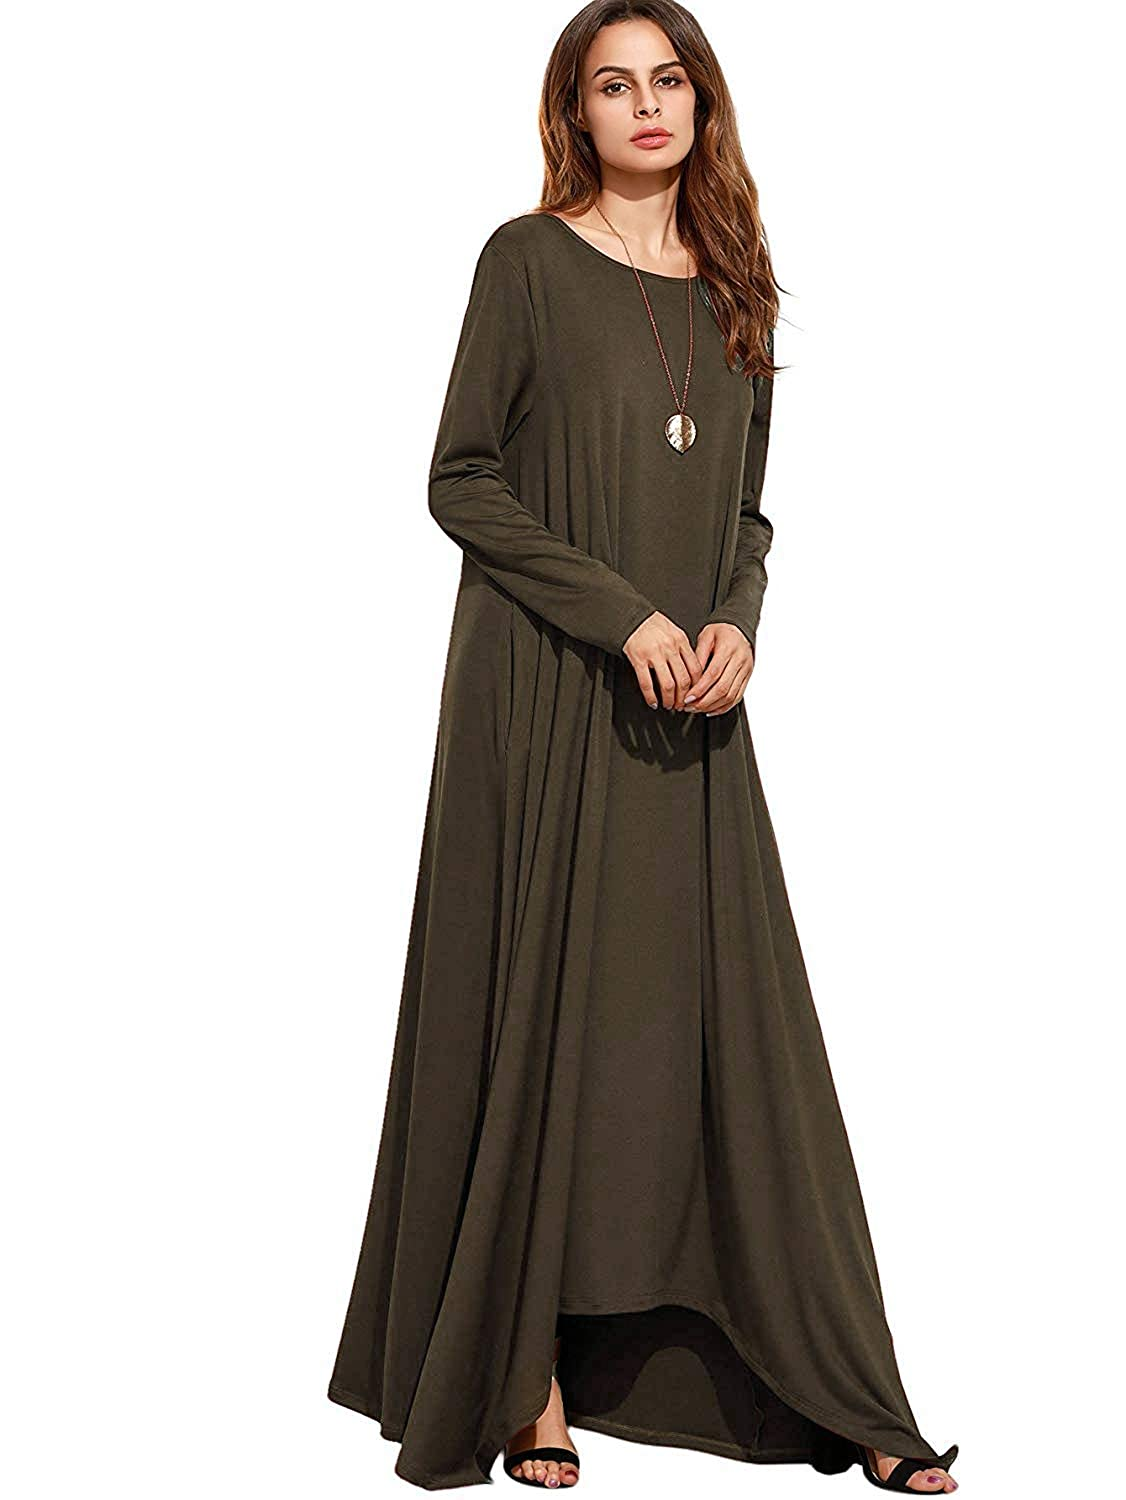 3577169b2 NASKY Dress Women s Ladies Maxi Dress with Long Sleeves T-Shirt Long Dress  with Pockets Casual Autumn Mother s Day  Amazon.co.uk  Clothing